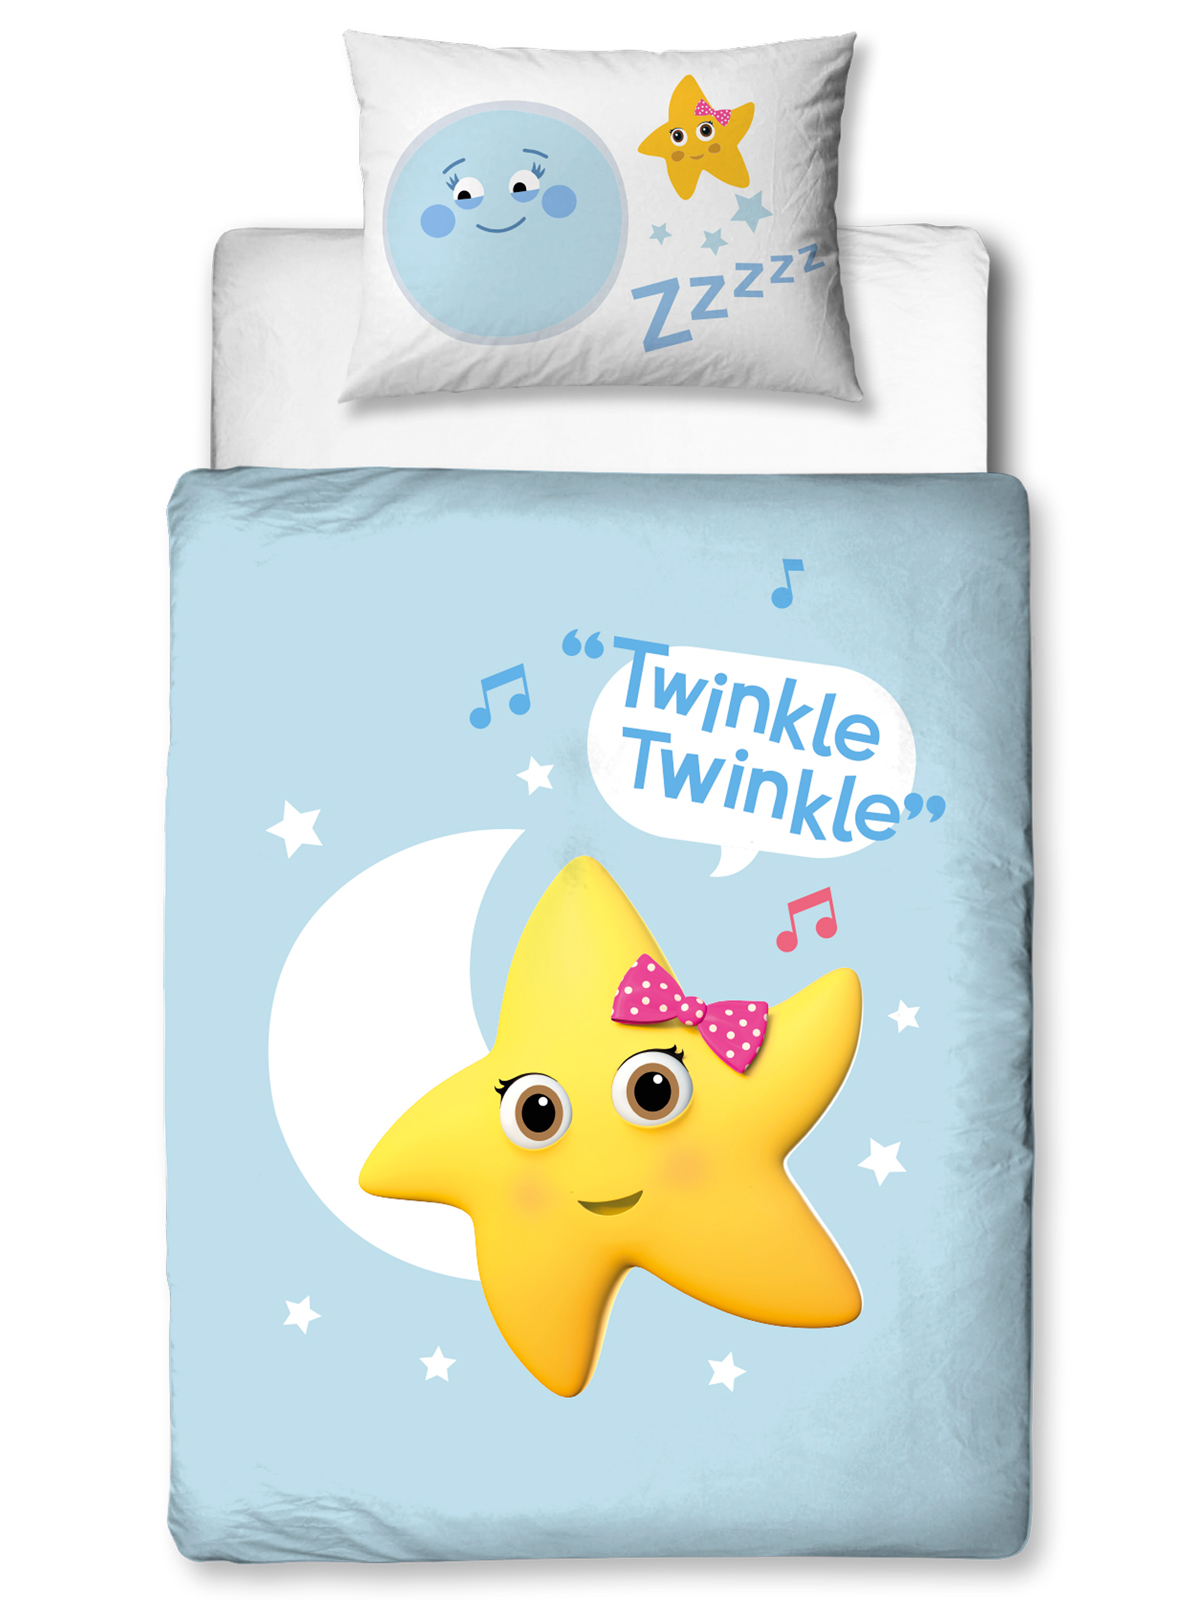 Little Baby Bum Star 4 in 1 Junior Bedding Bundle (Duvet, Pillow and